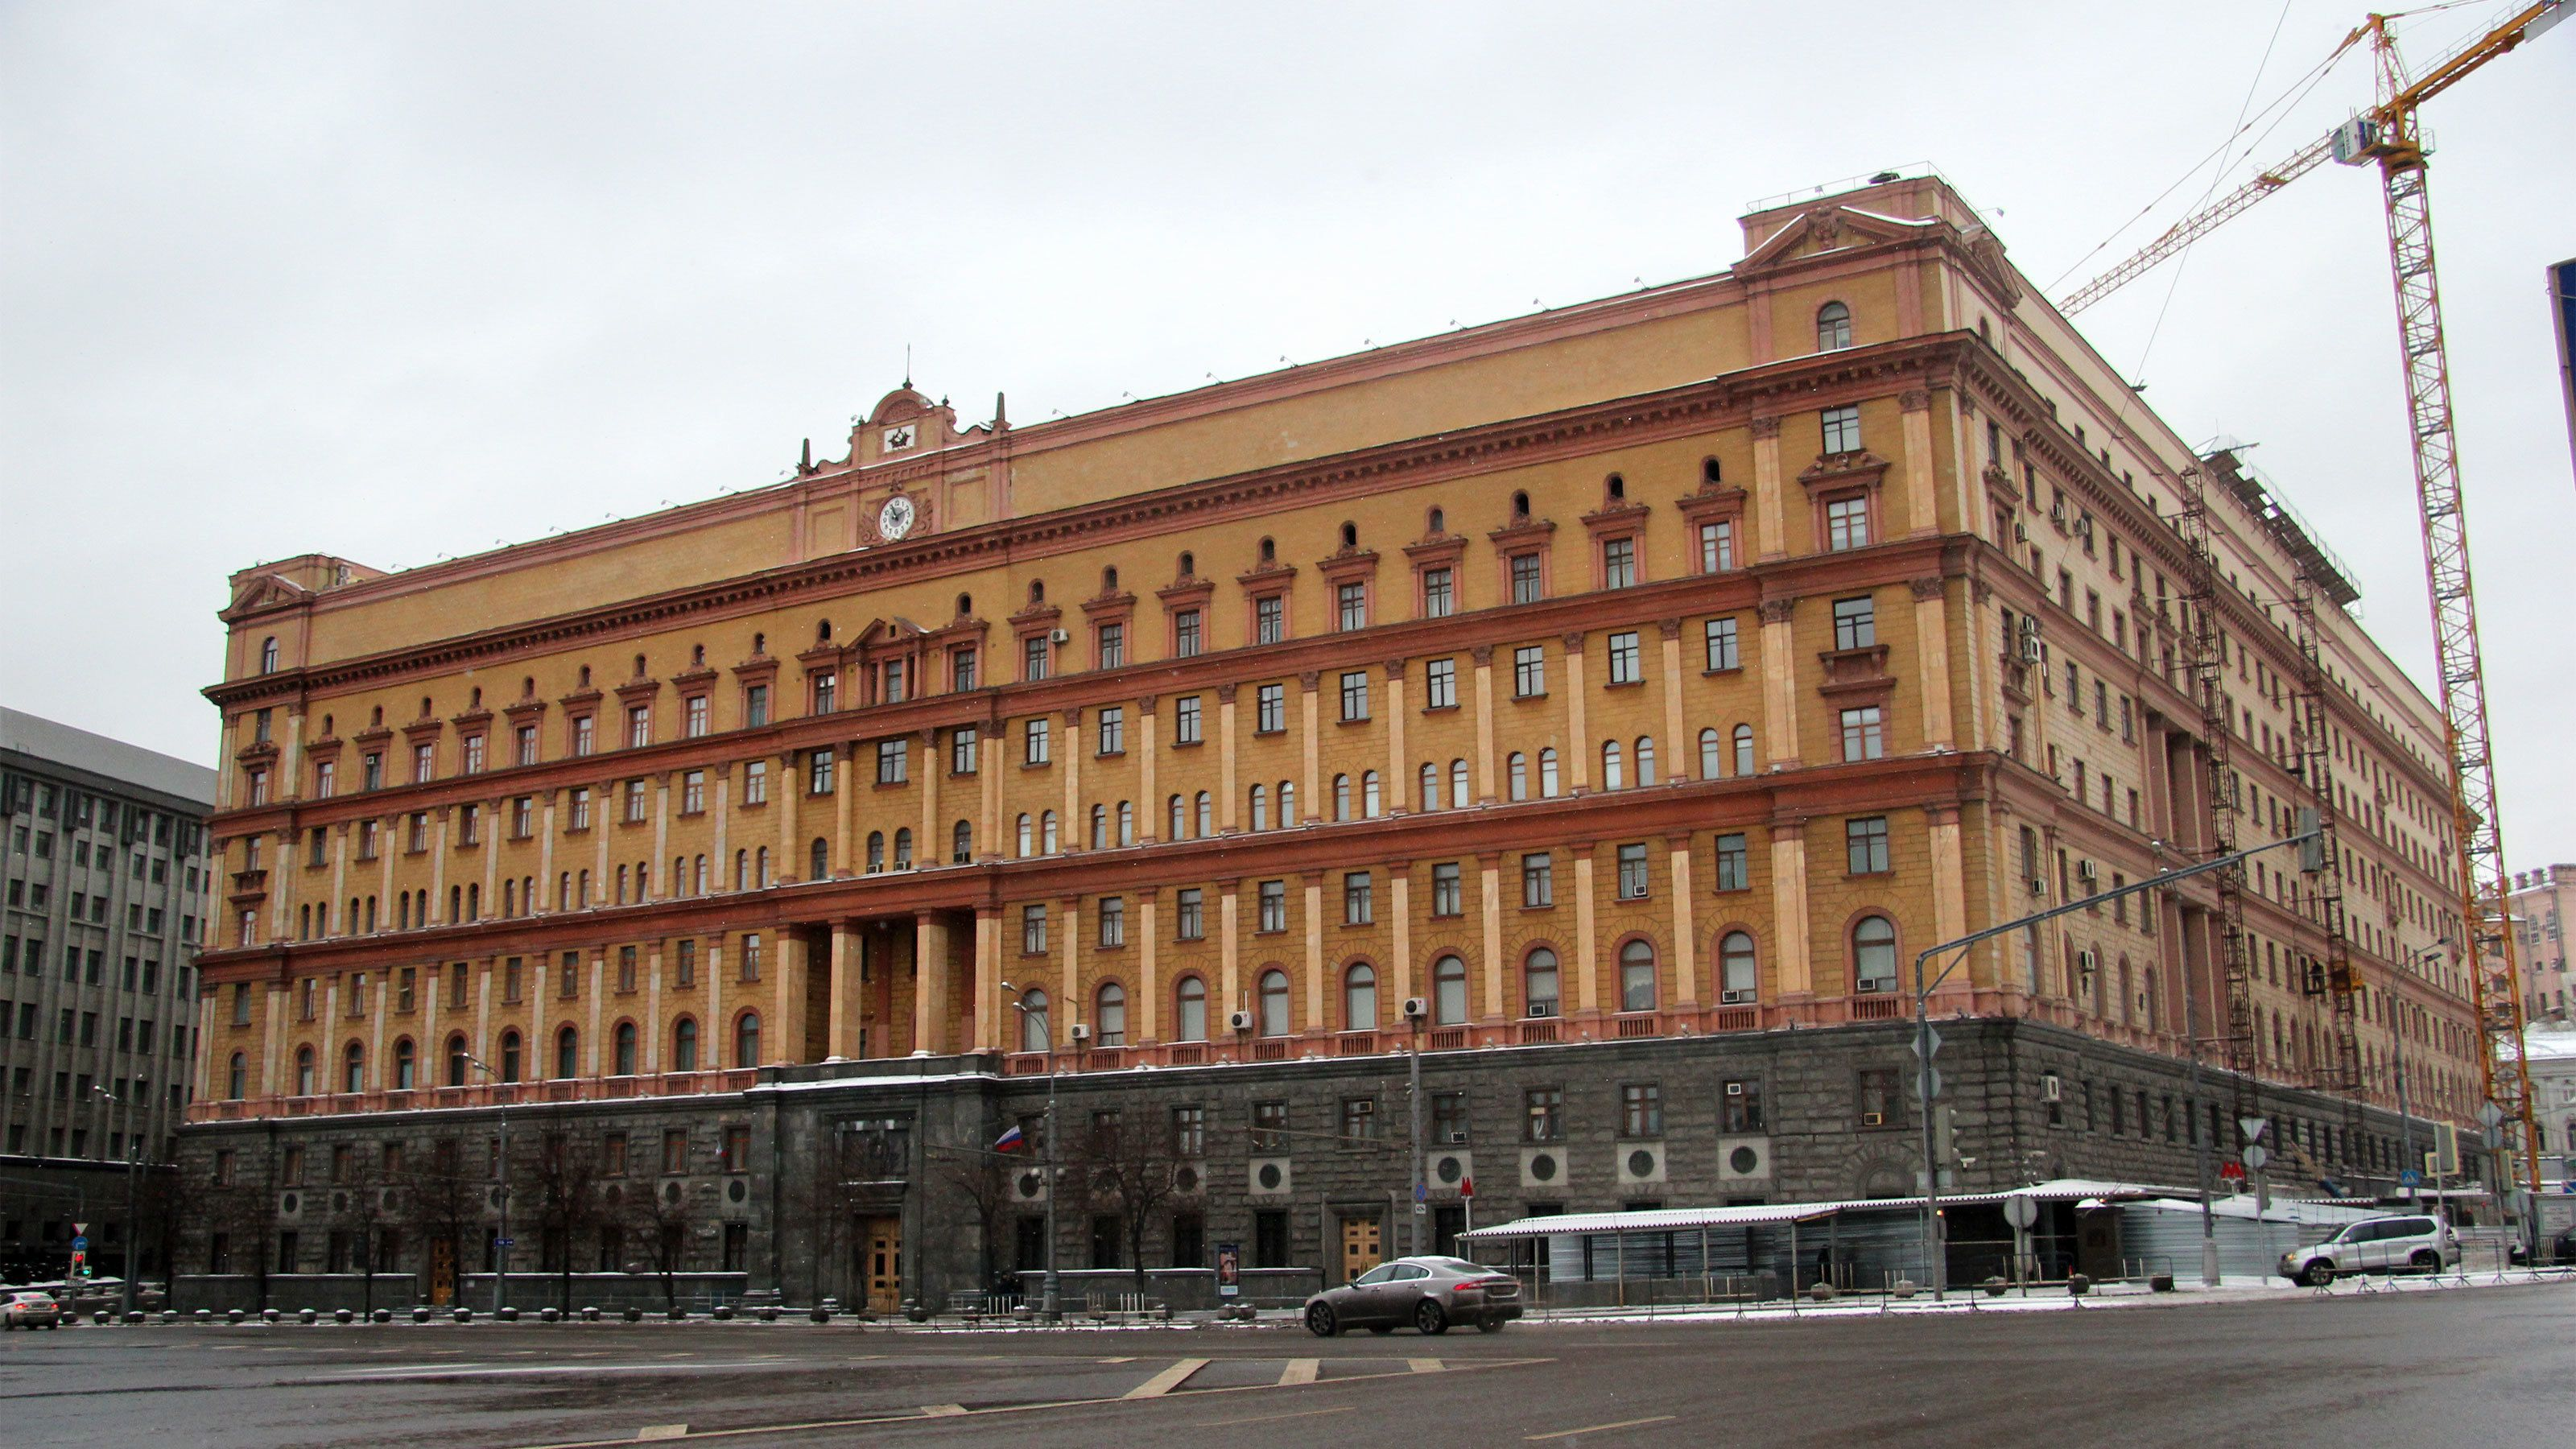 The facade of an old communist building in moscow